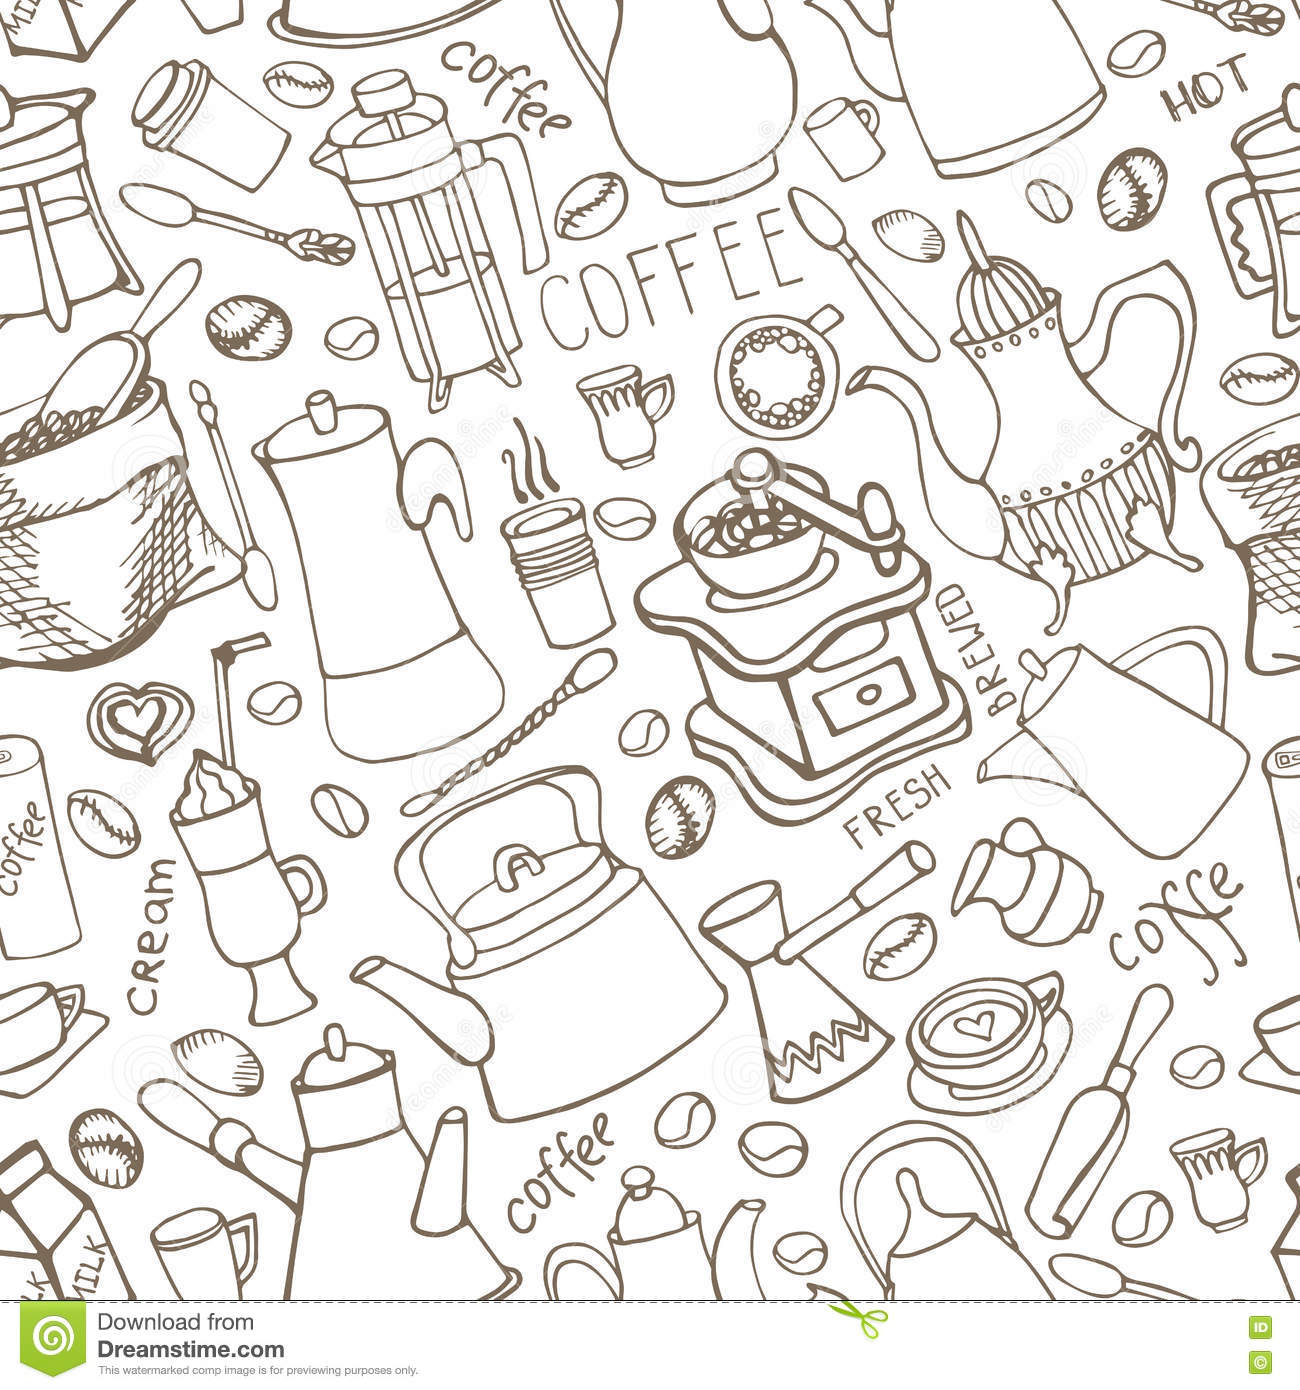 seamless doodle coffee pattern - photo #18